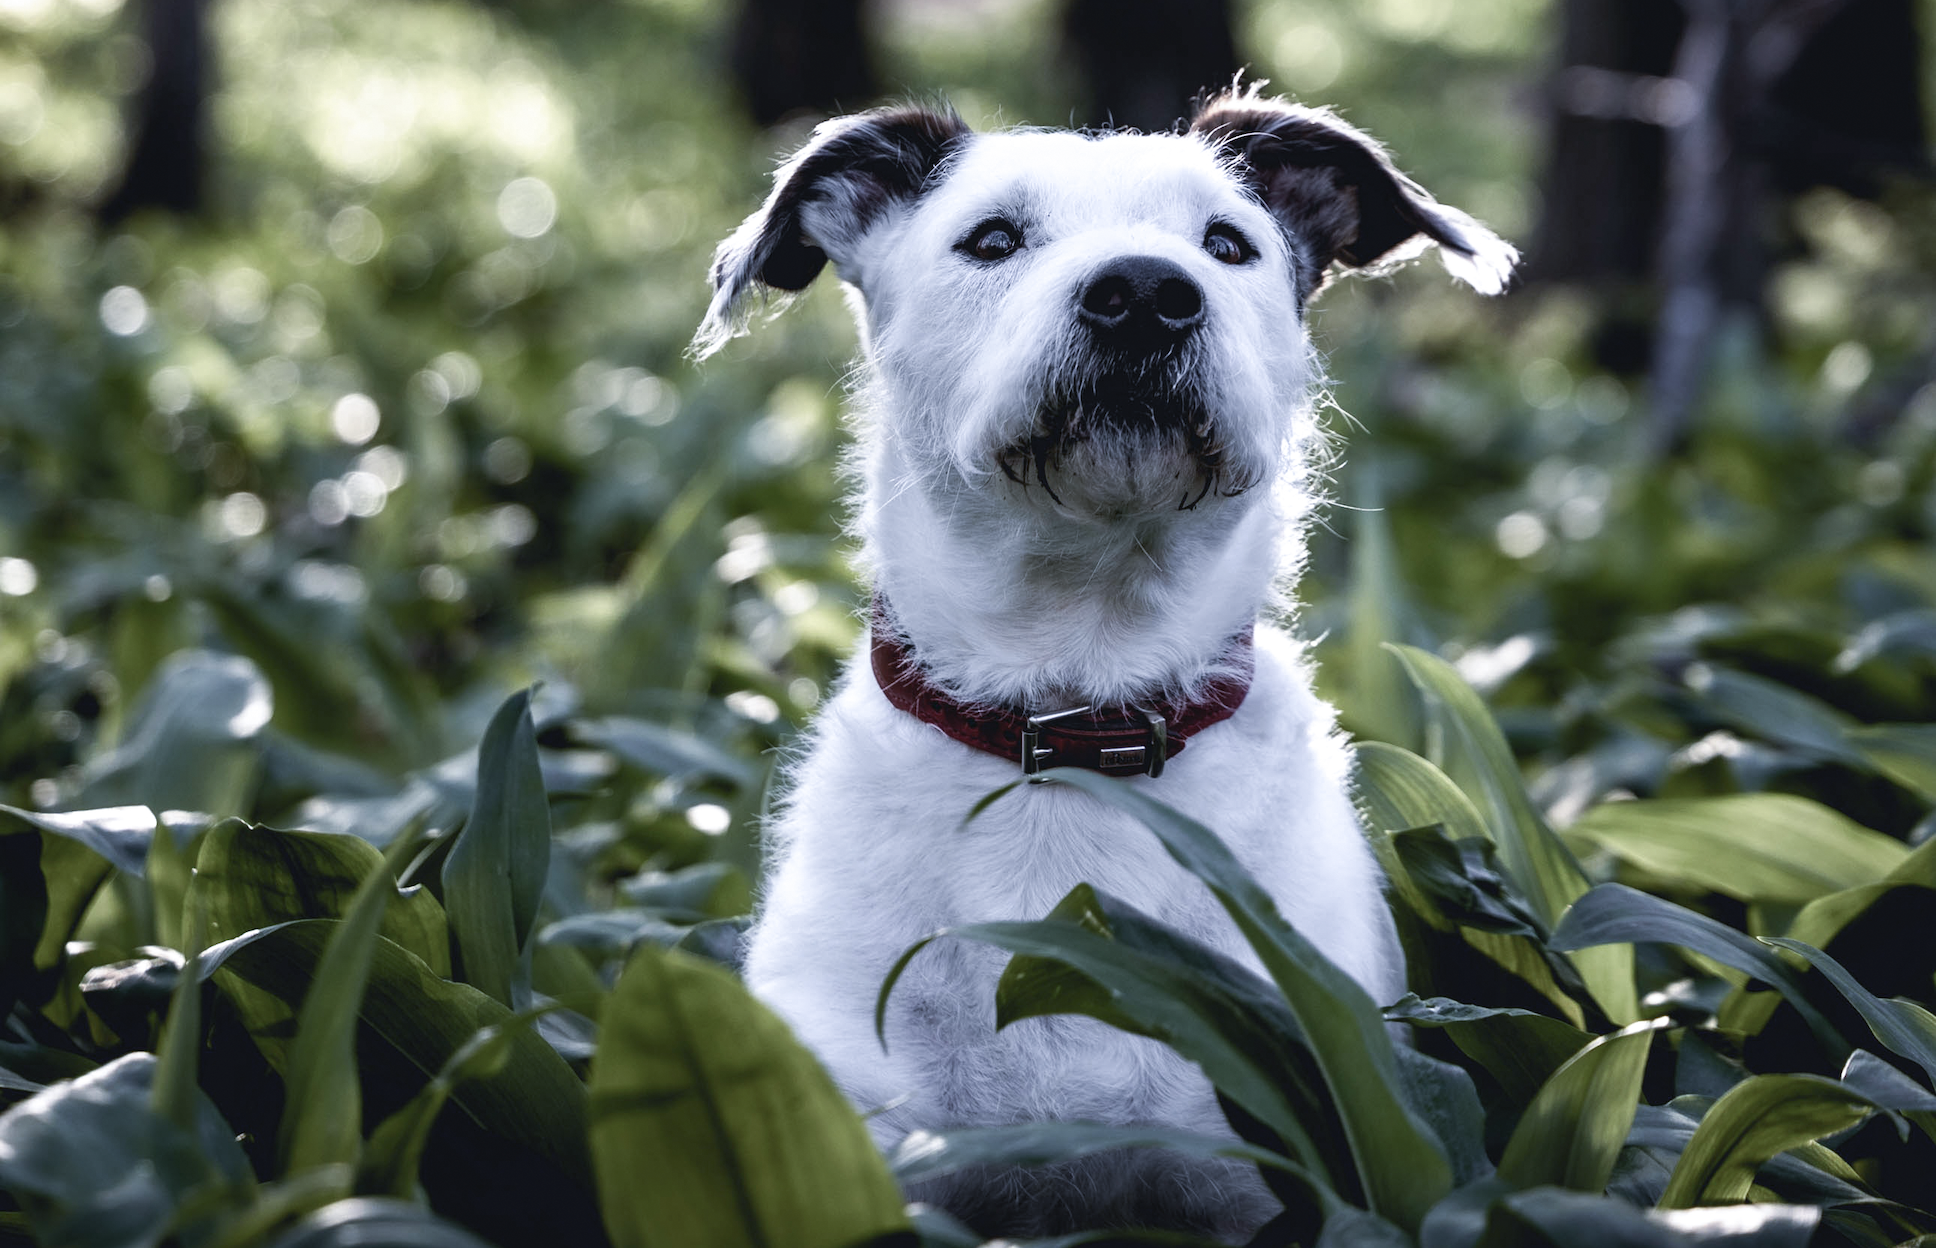 A Jack Russell dog lays in the grass on high alert.